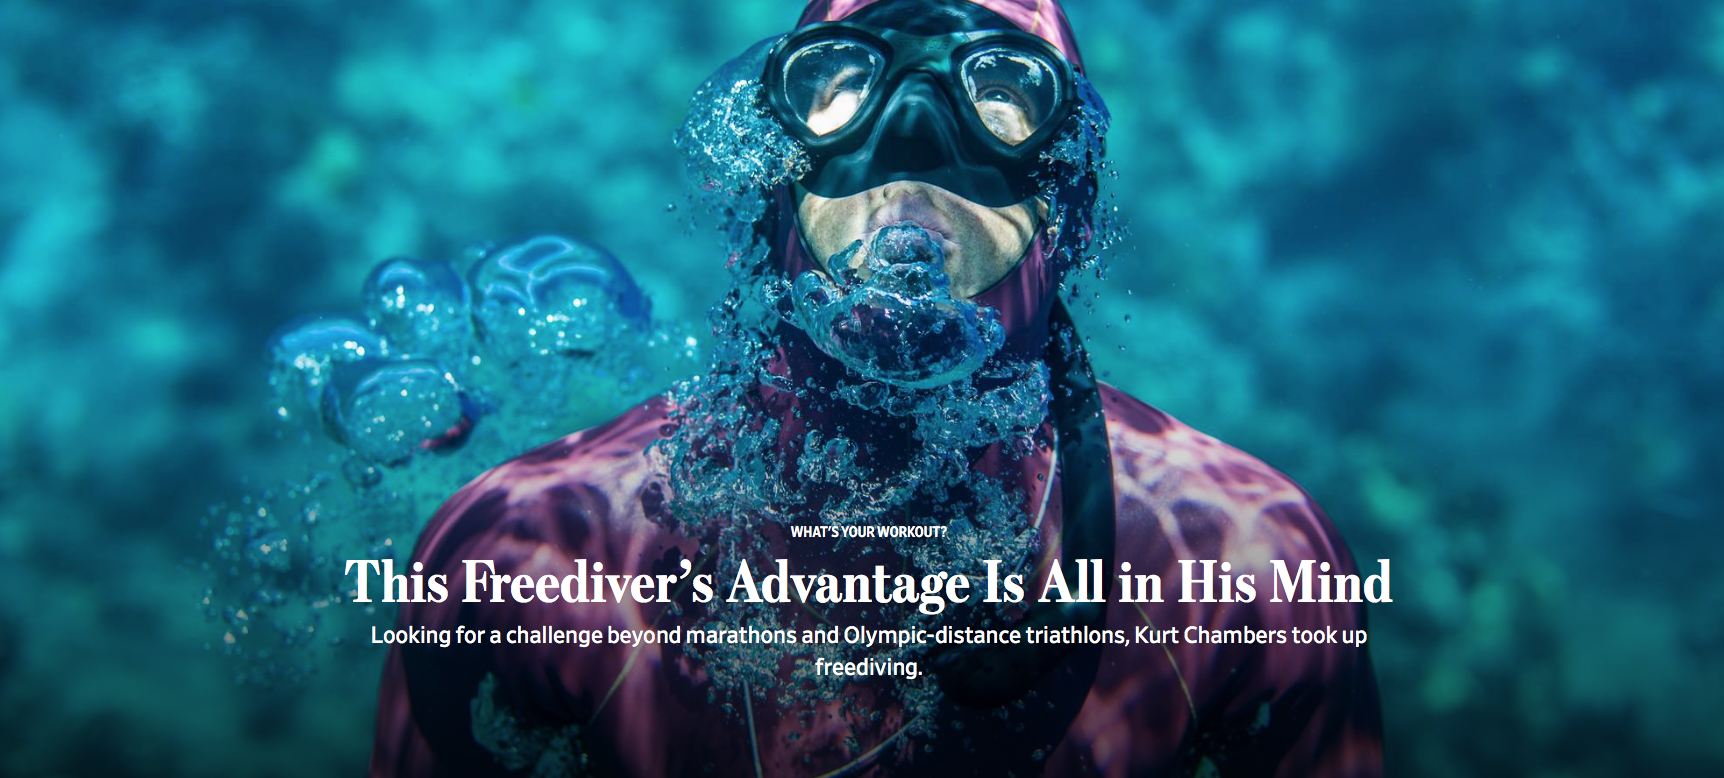 Professional freediver Kurt Chambers practices repetitive surfacing exercises off of the Pali Coast on Maui. He can dive to deeps of 300 feet on a single breath. AMANDA EMMES FOR THE WALL STREET JOURNAL